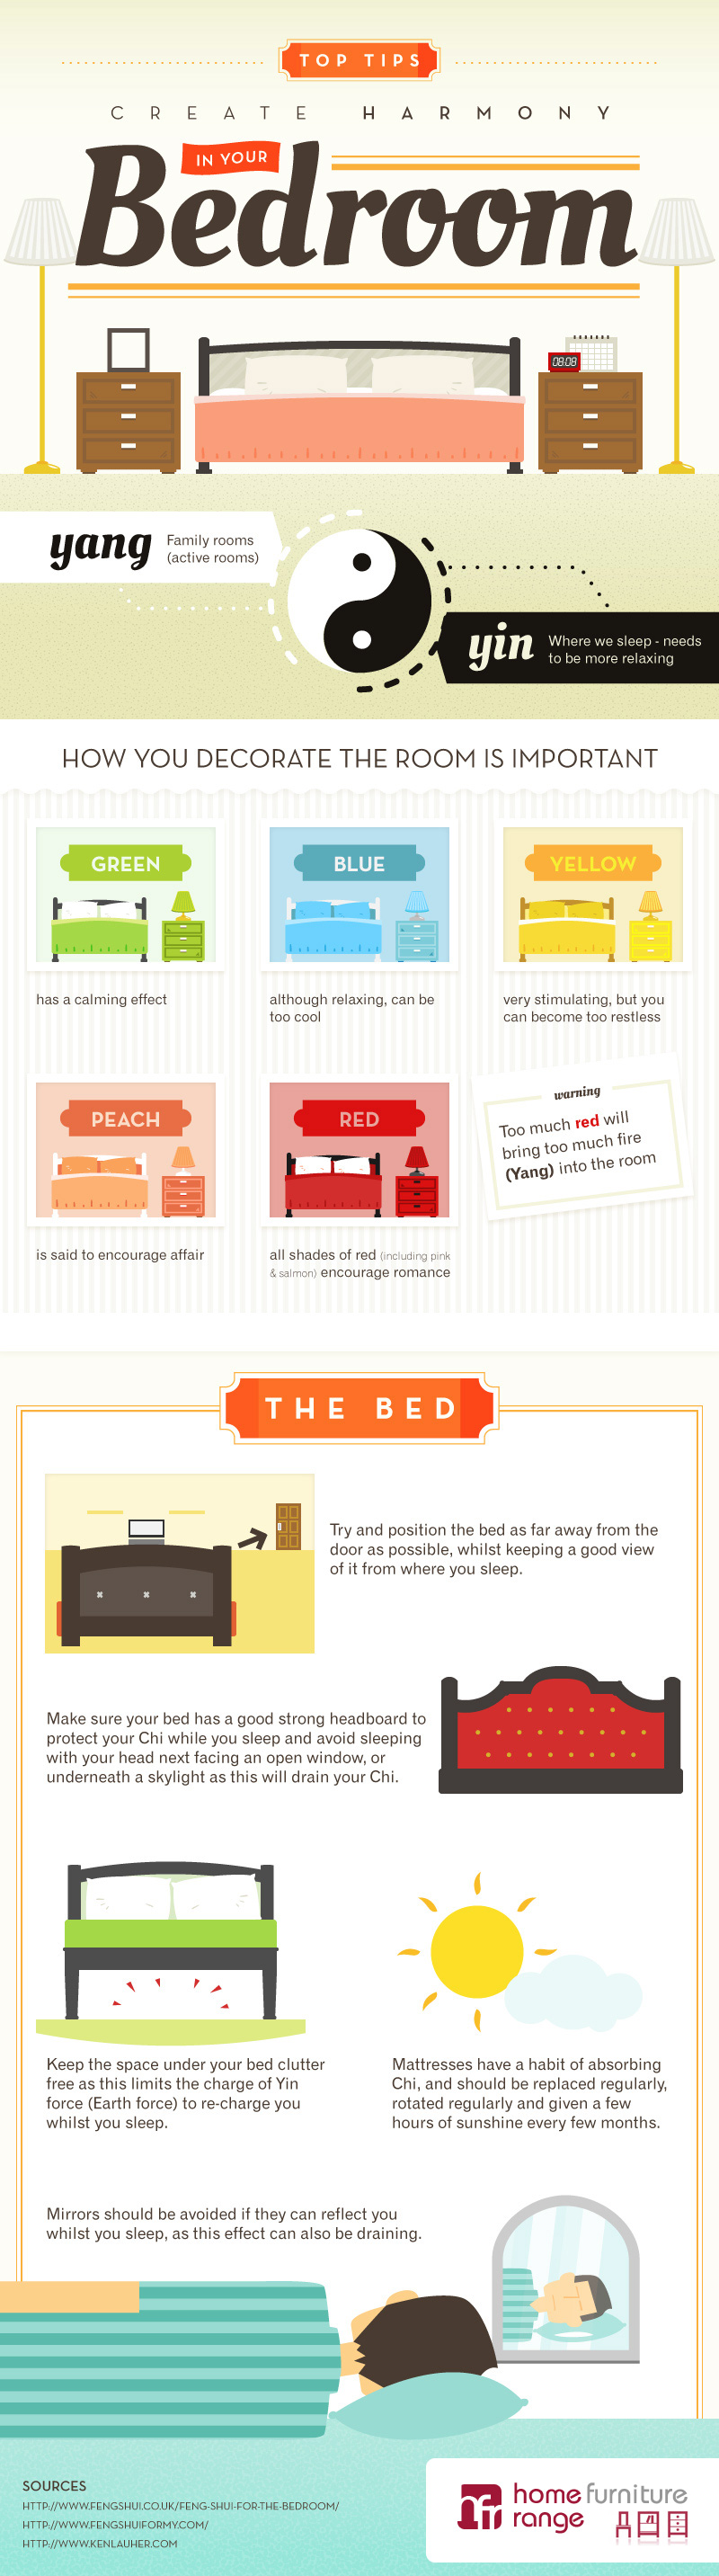 Feng Shui Bedroom How To Feng Shui Your Bedroom  Visual.ly